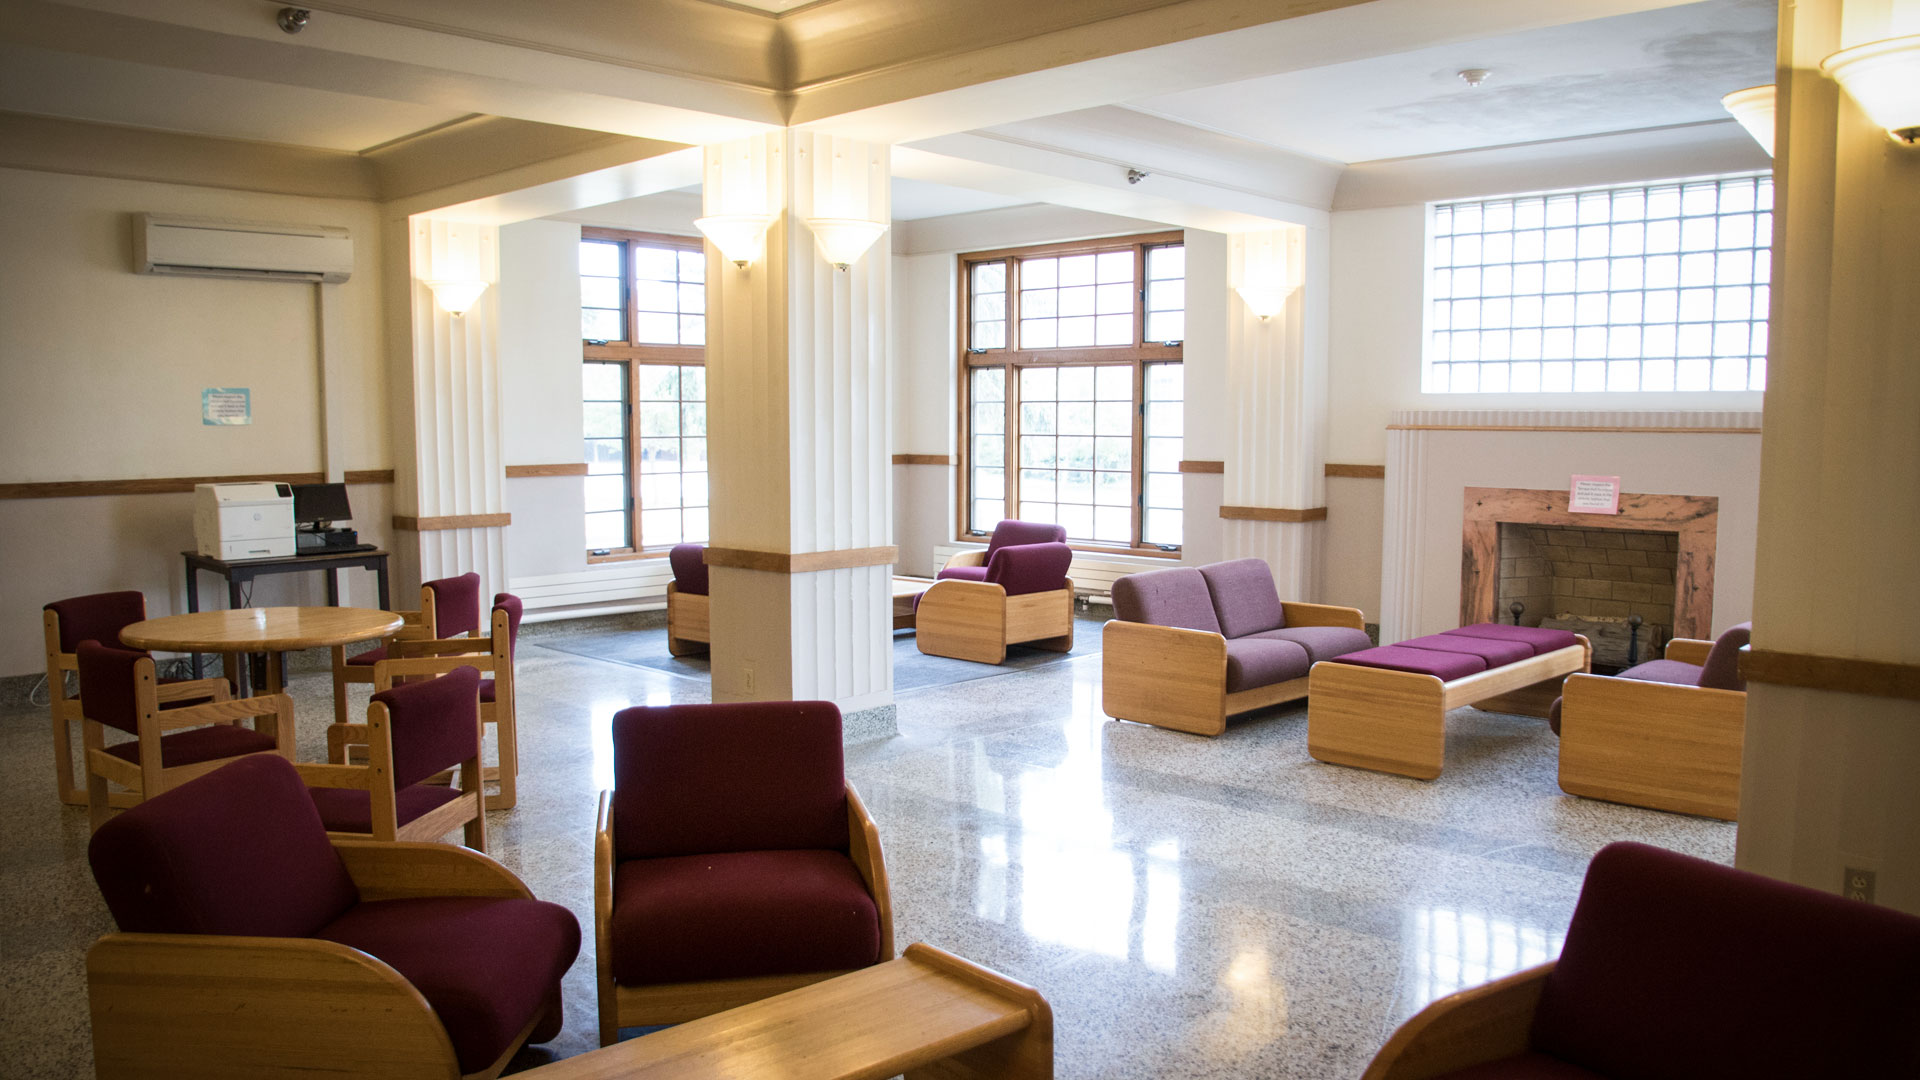 Terrace Hall - Commons / Lounge Room